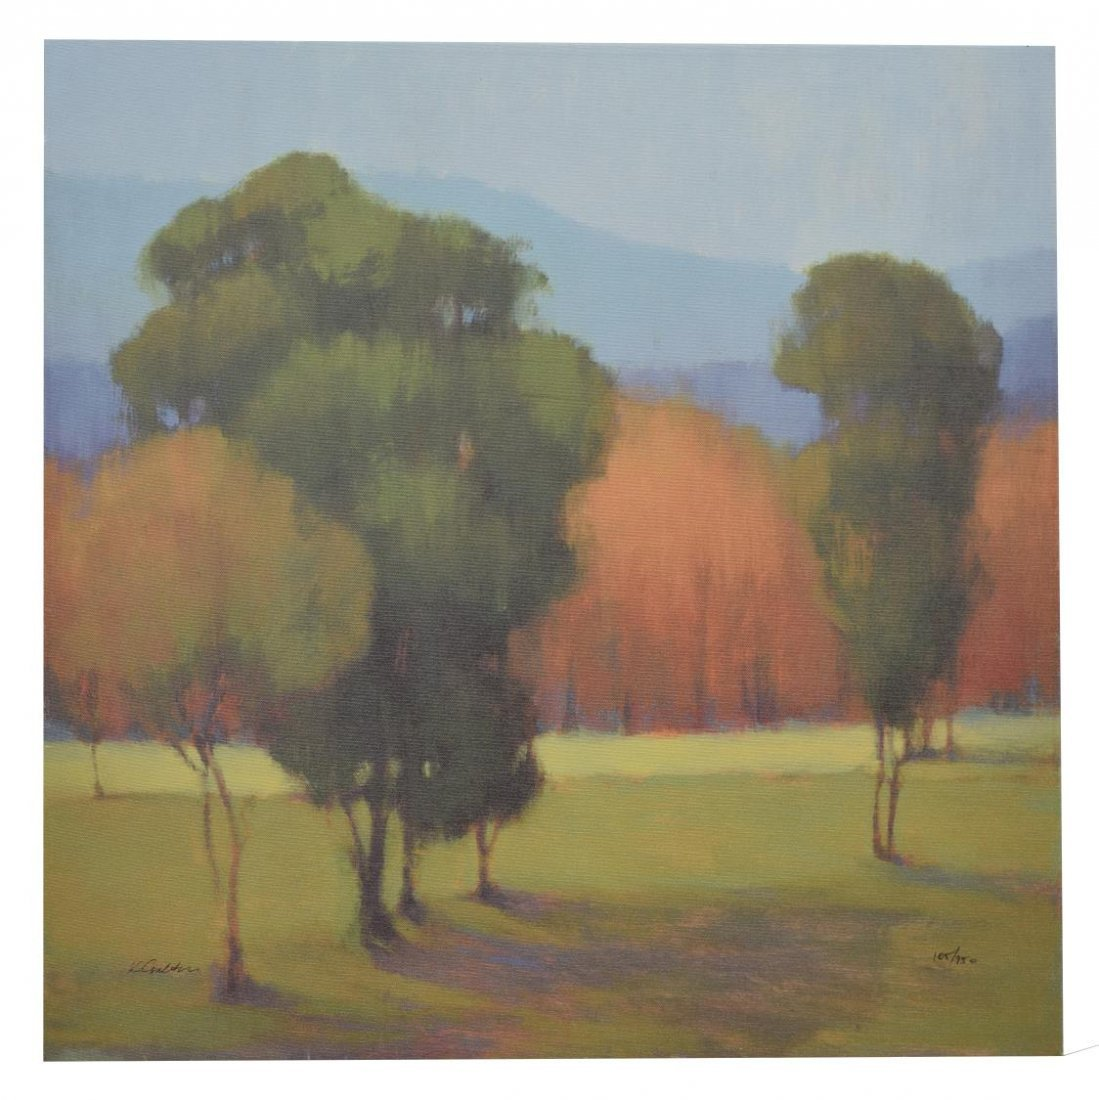 KIM COULTER SIGNED GICLEE PRINT ON CANVAS